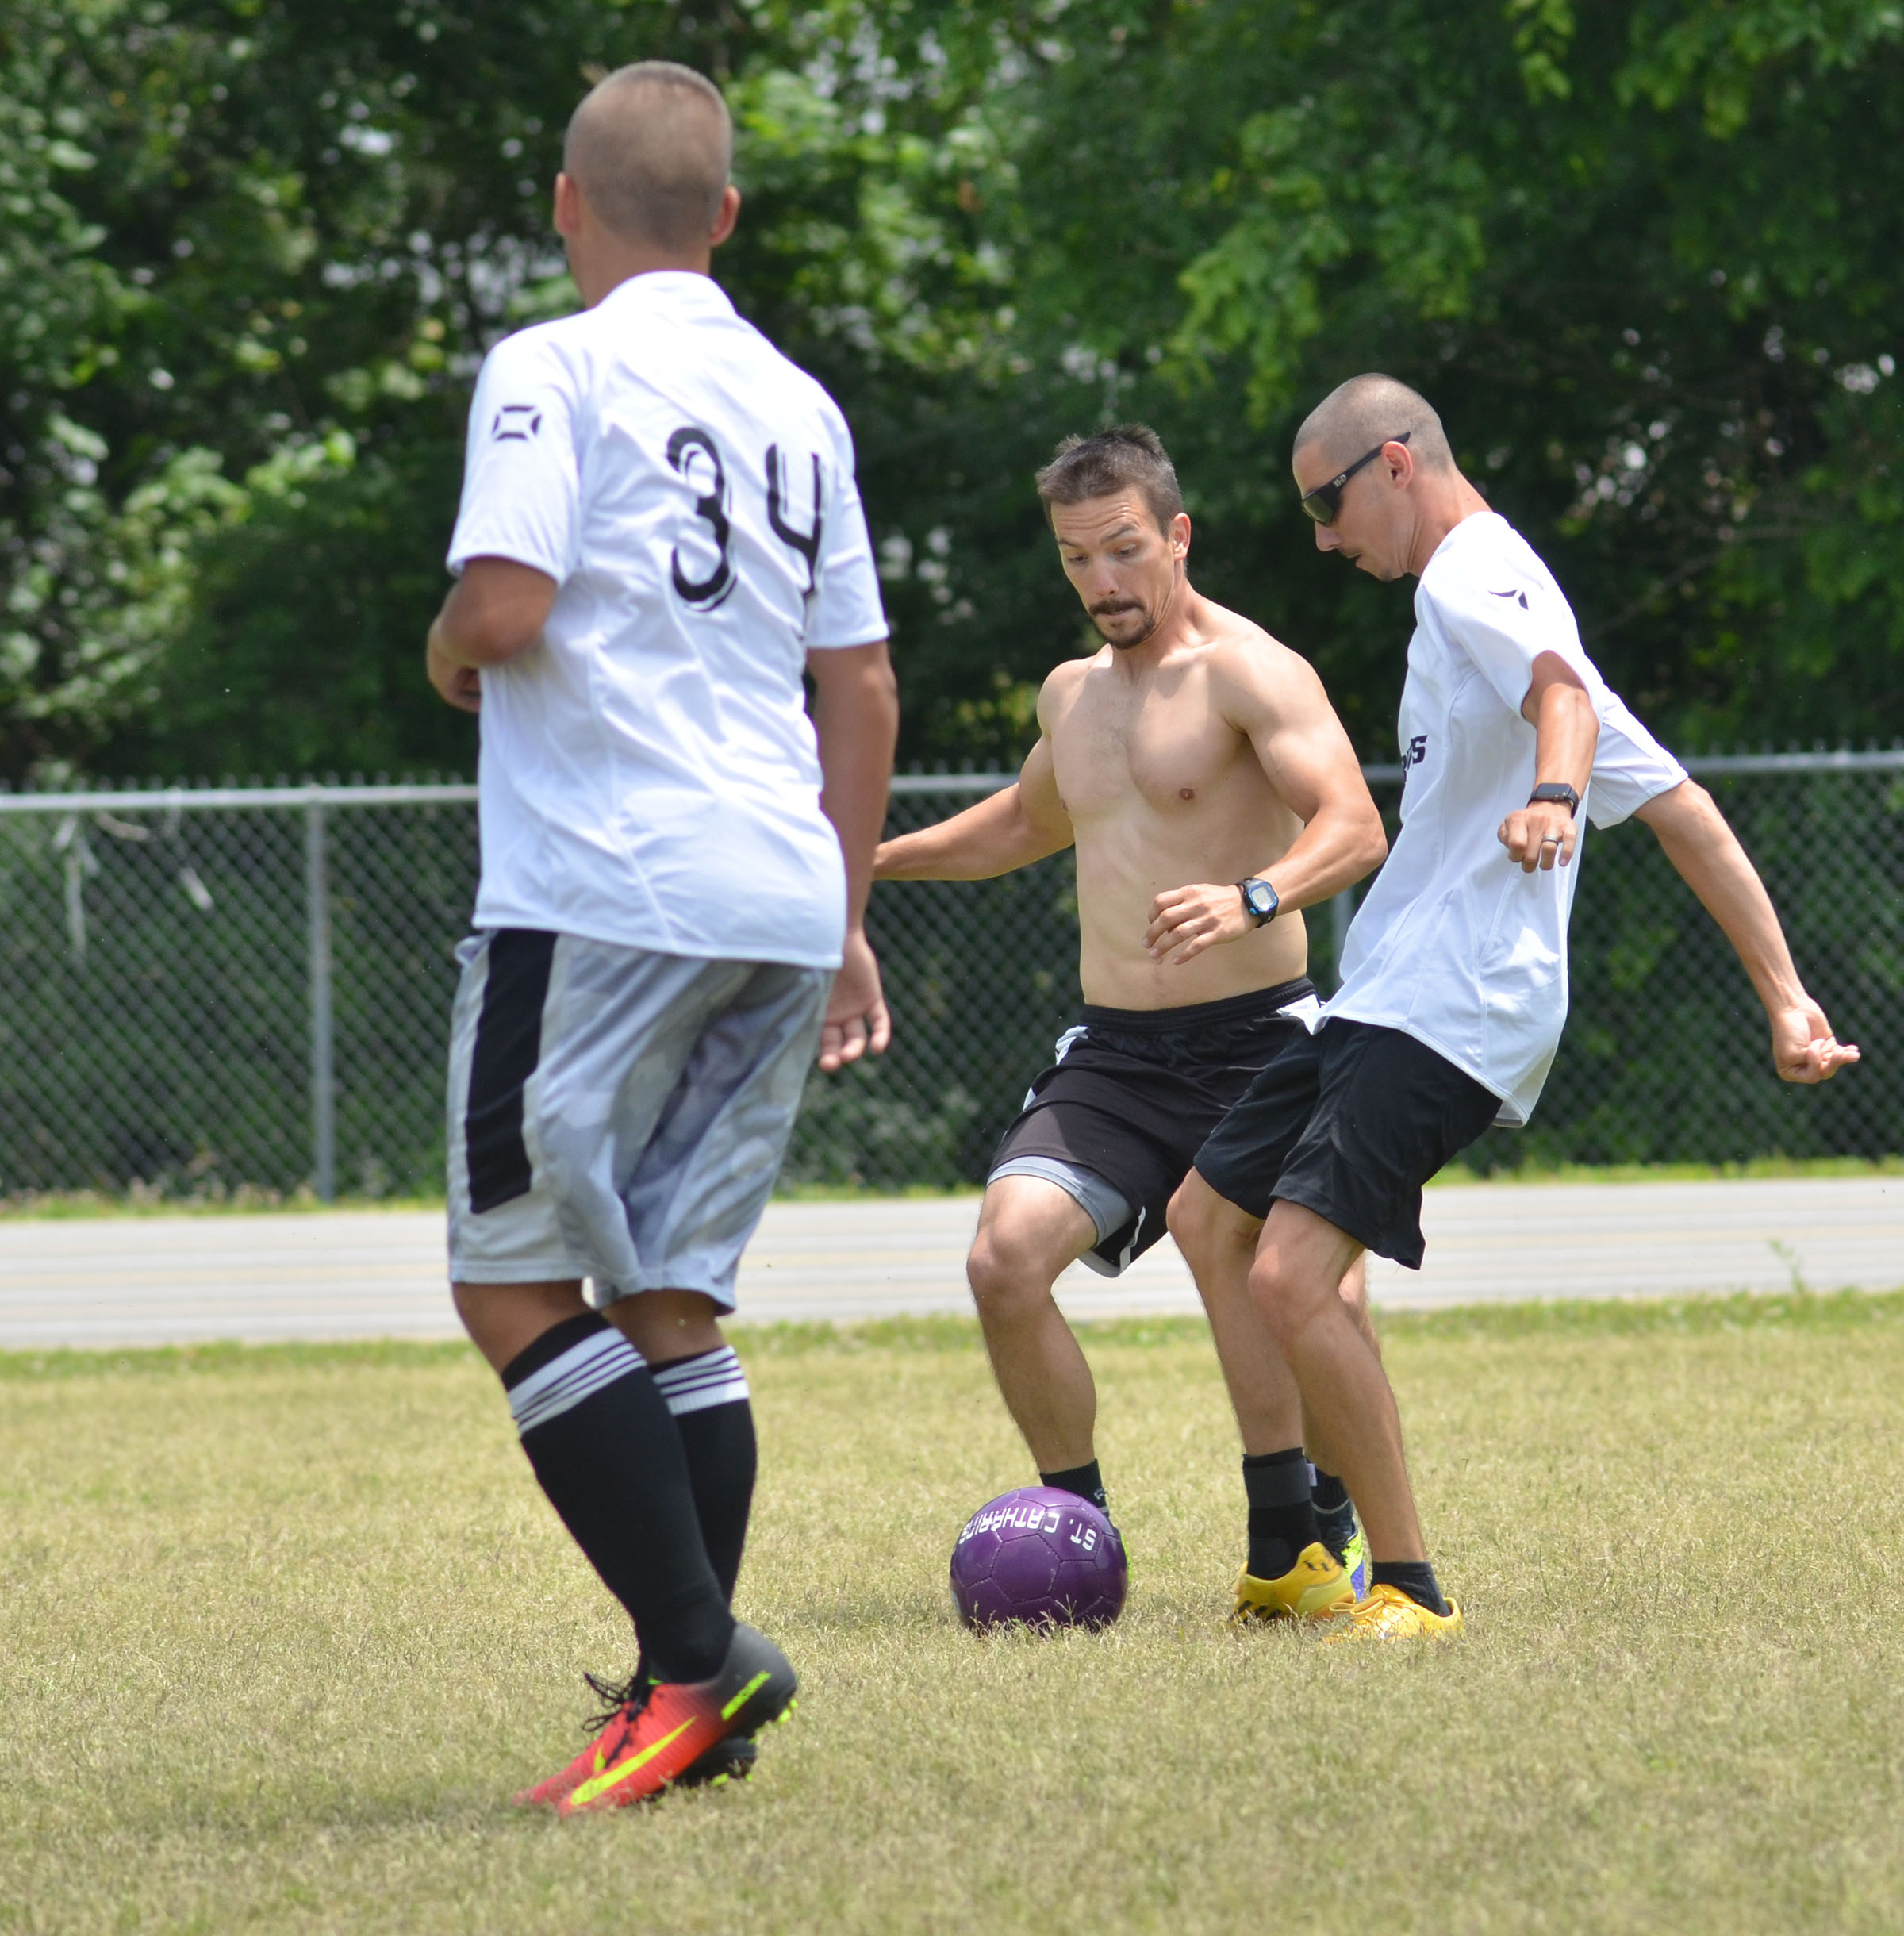 CHS soccer alumni player Drew Skaggs, center, battles Bradley Harris, an alumni player and head coach, for the ball.